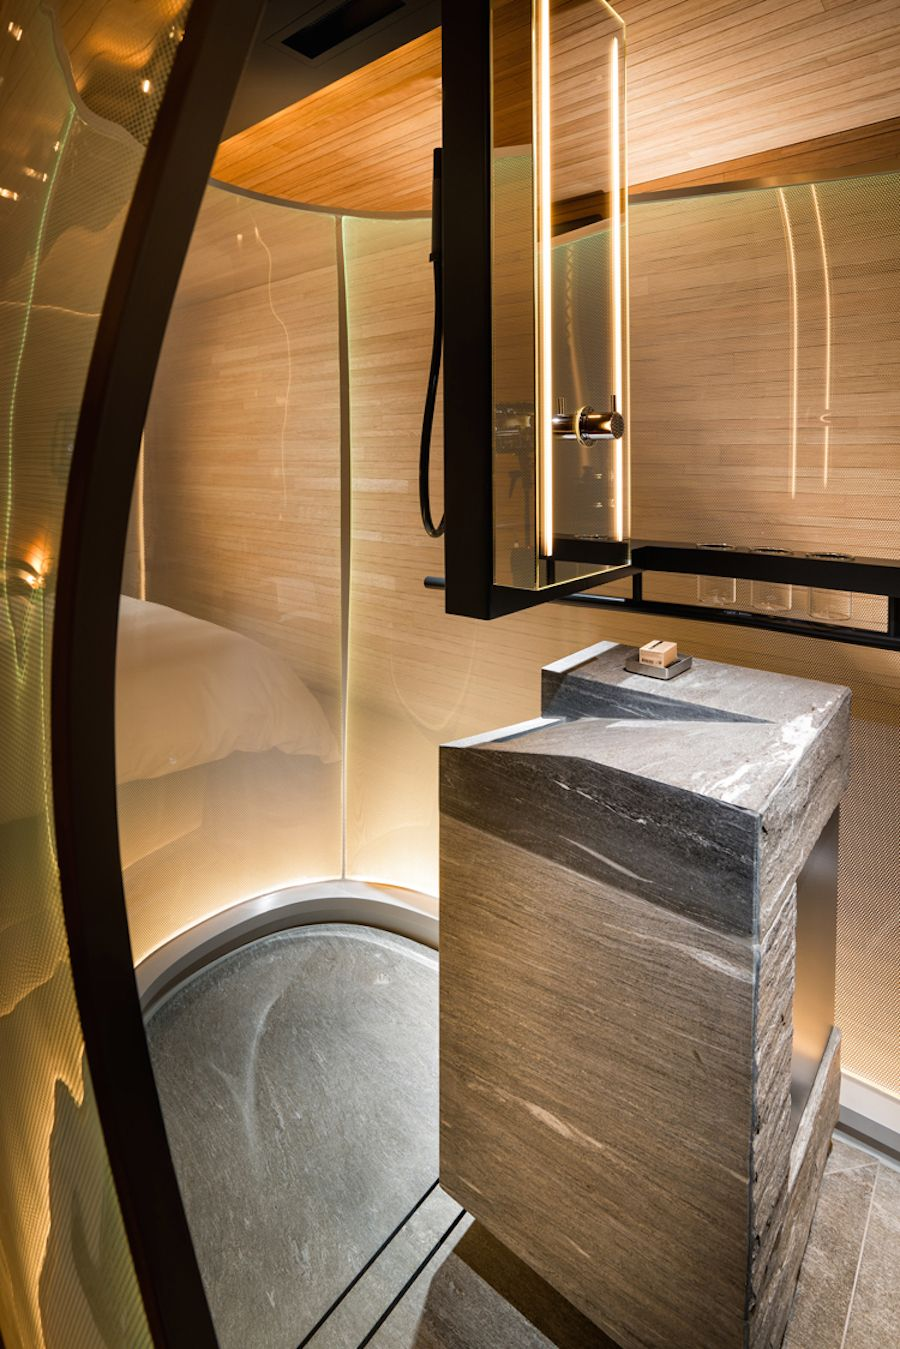 Hotel Guest Room Design: Incredible Rooms In 7132 Hotel Design By Morphosis (With